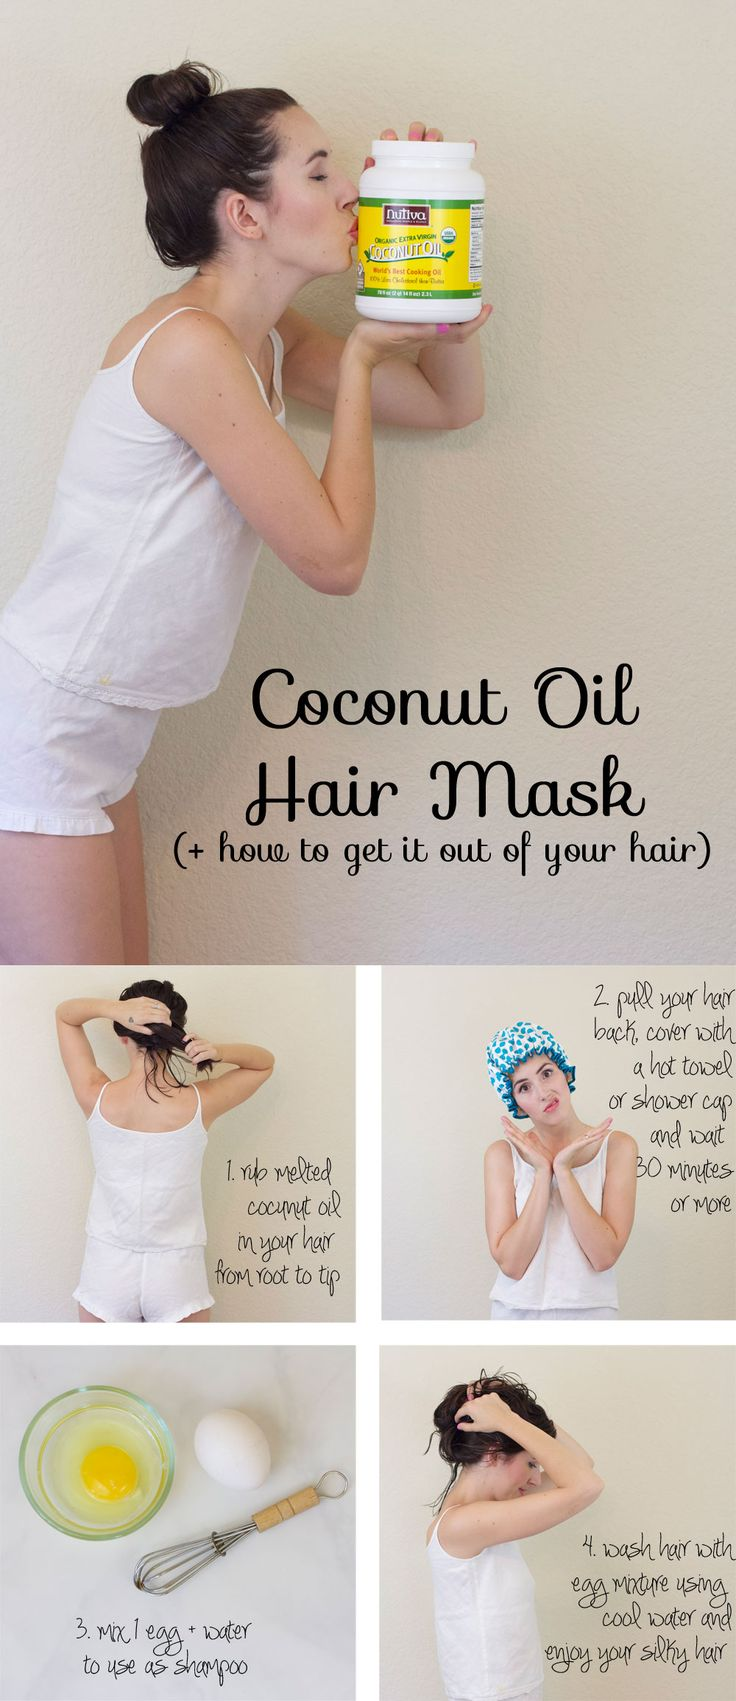 11 Coconut Oil Hair Mask